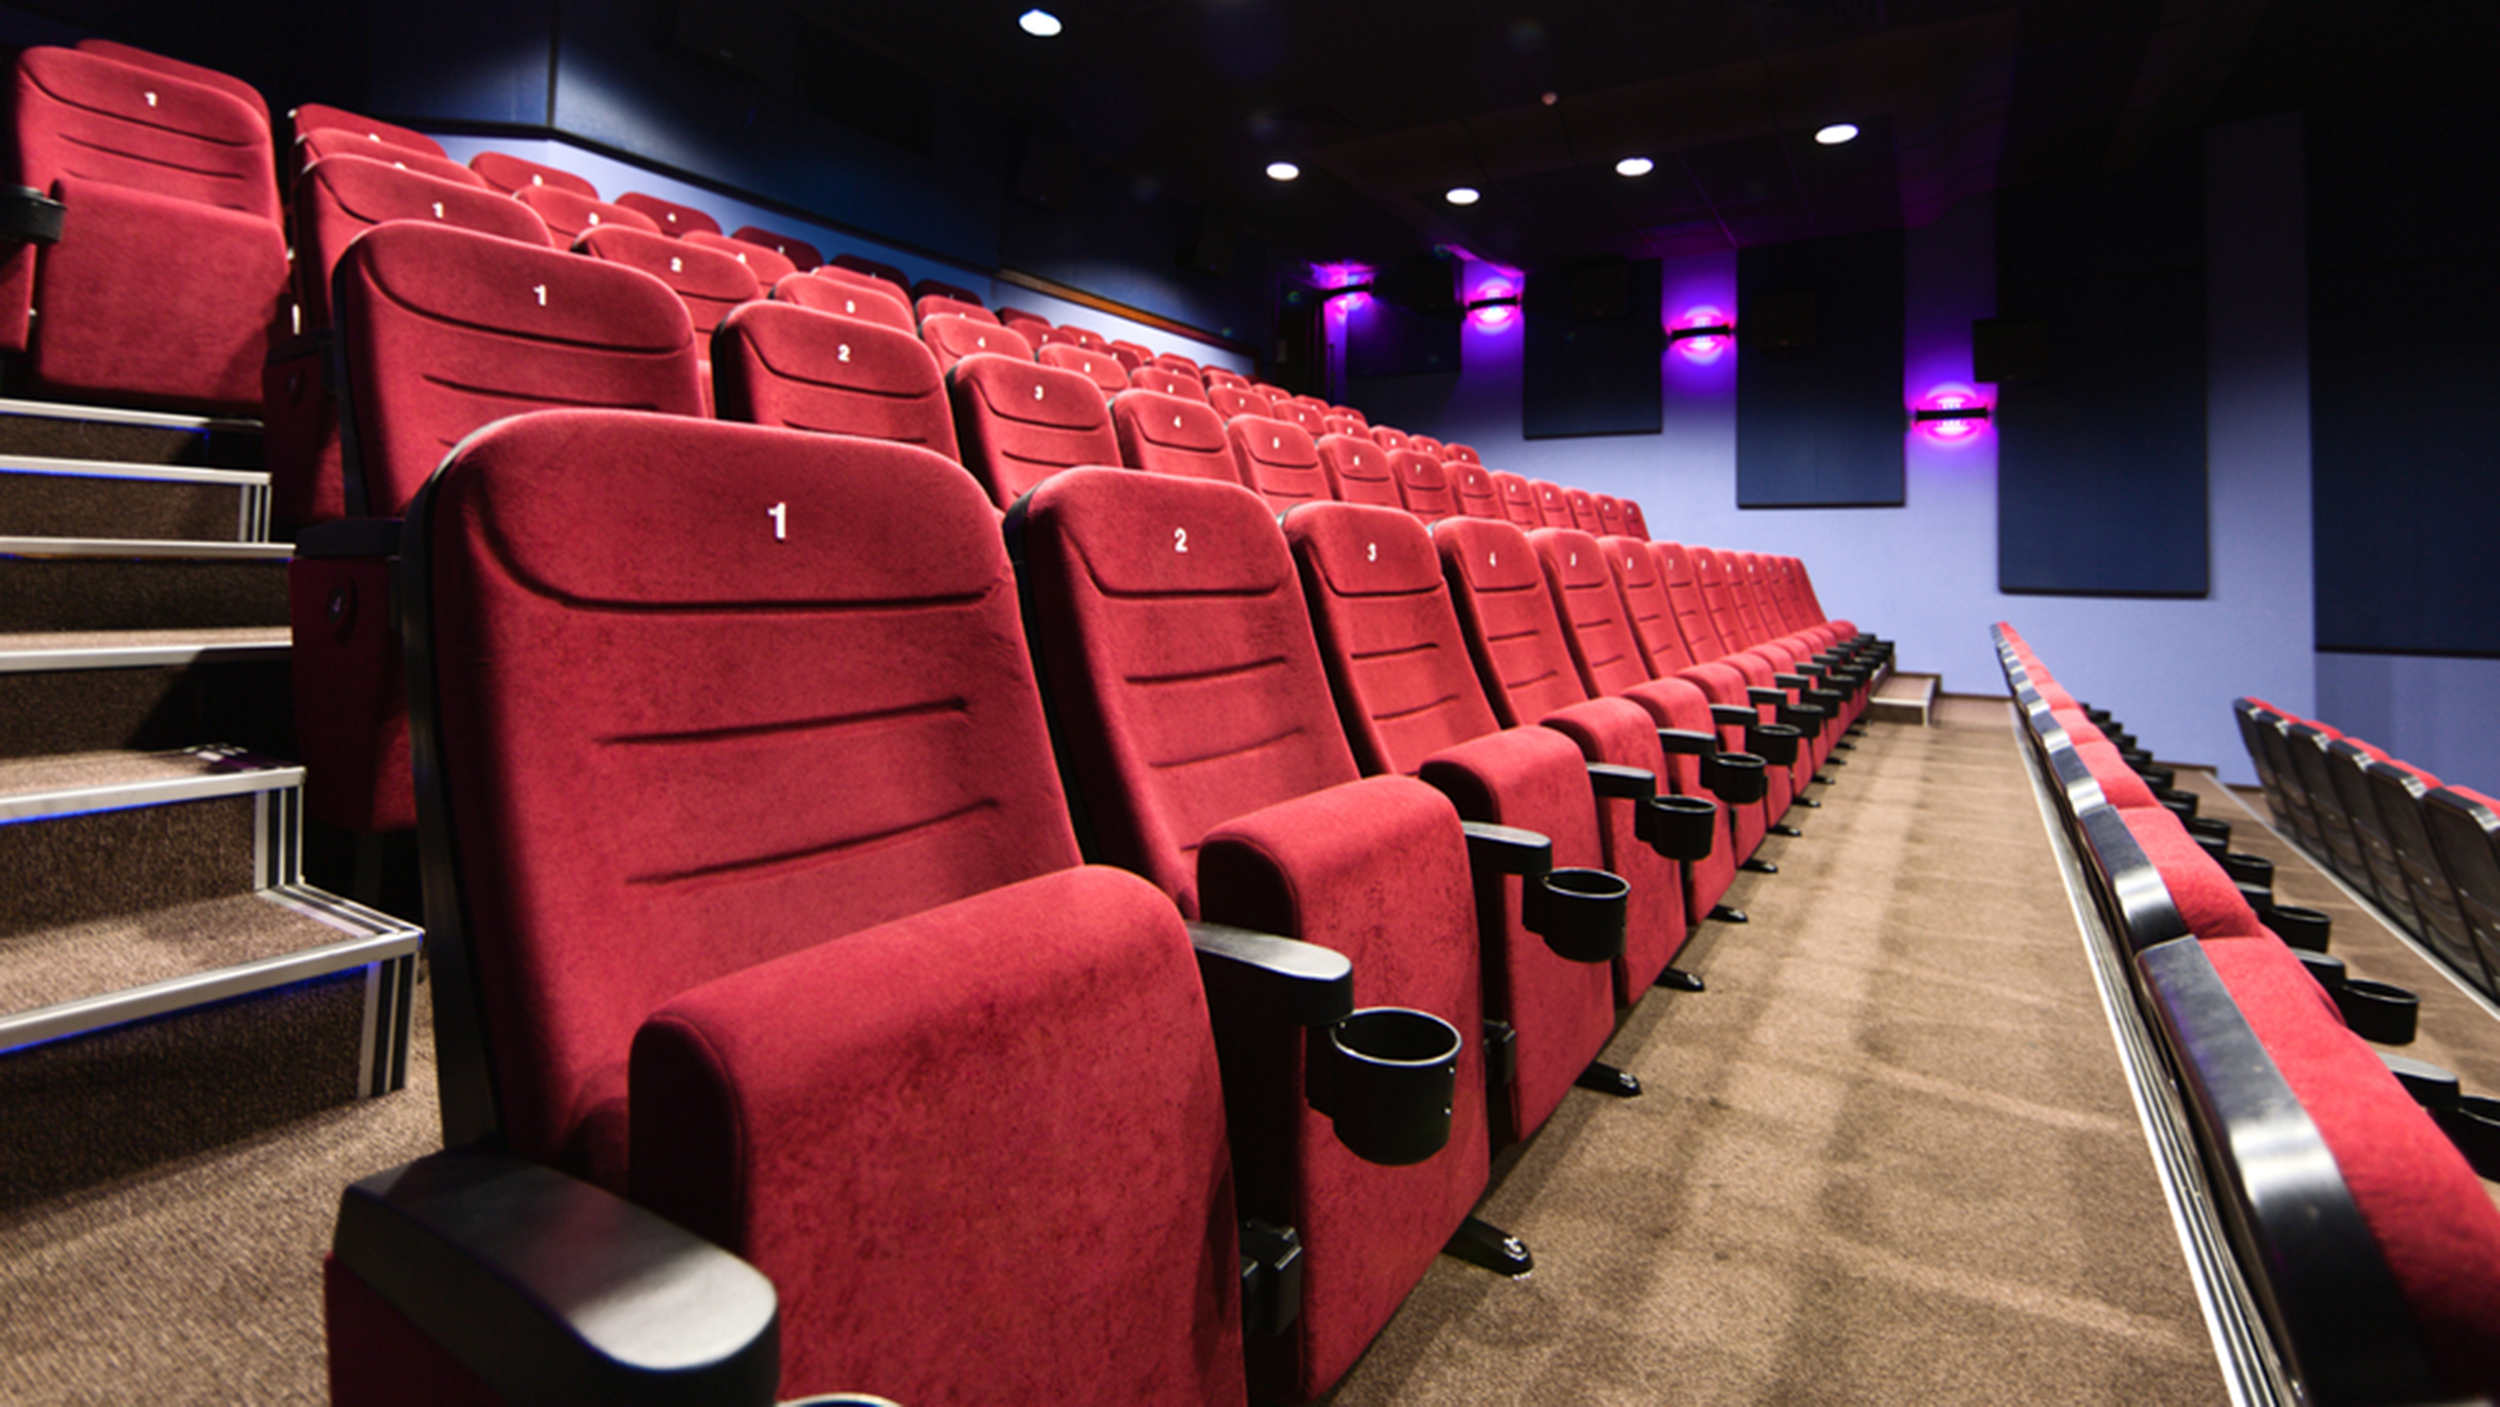 How do you solve a problem like movie theatres?